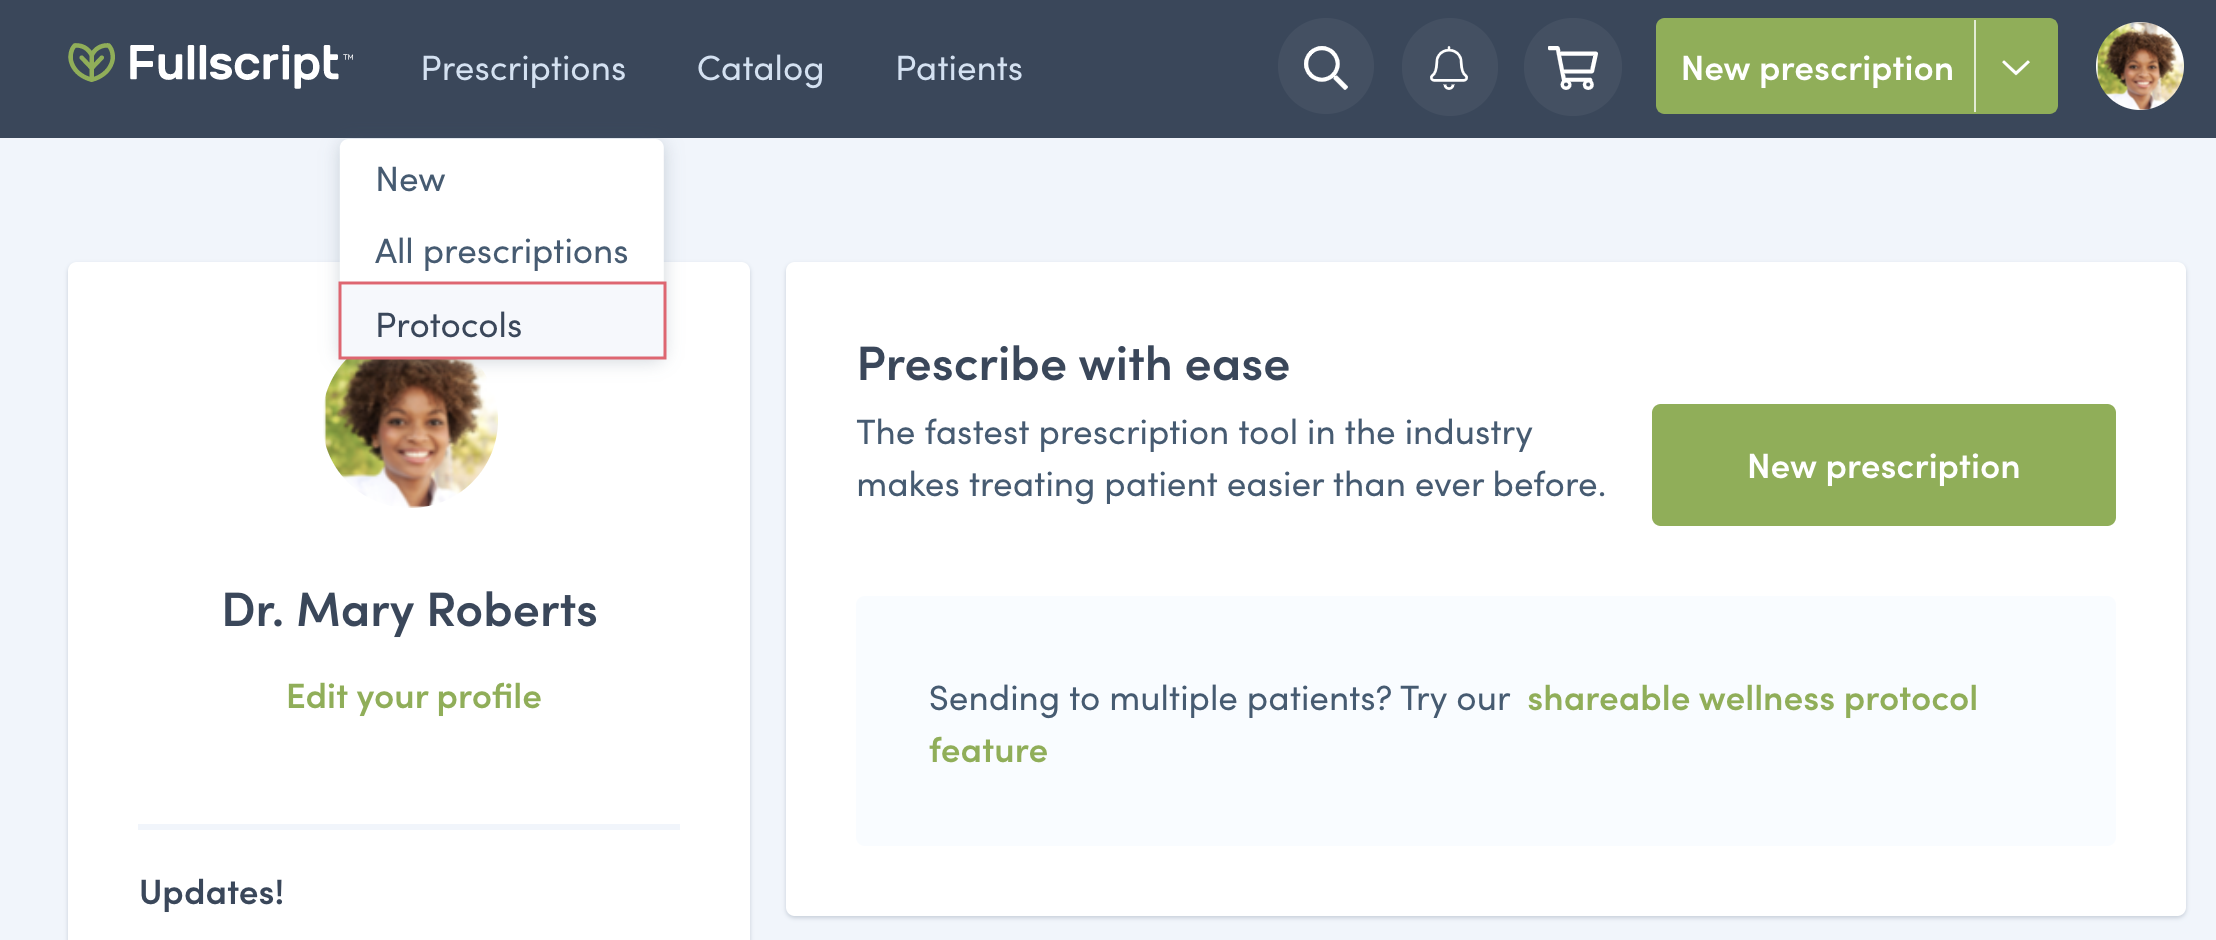 hover_over_prescriptions_to_access_Protocols.png